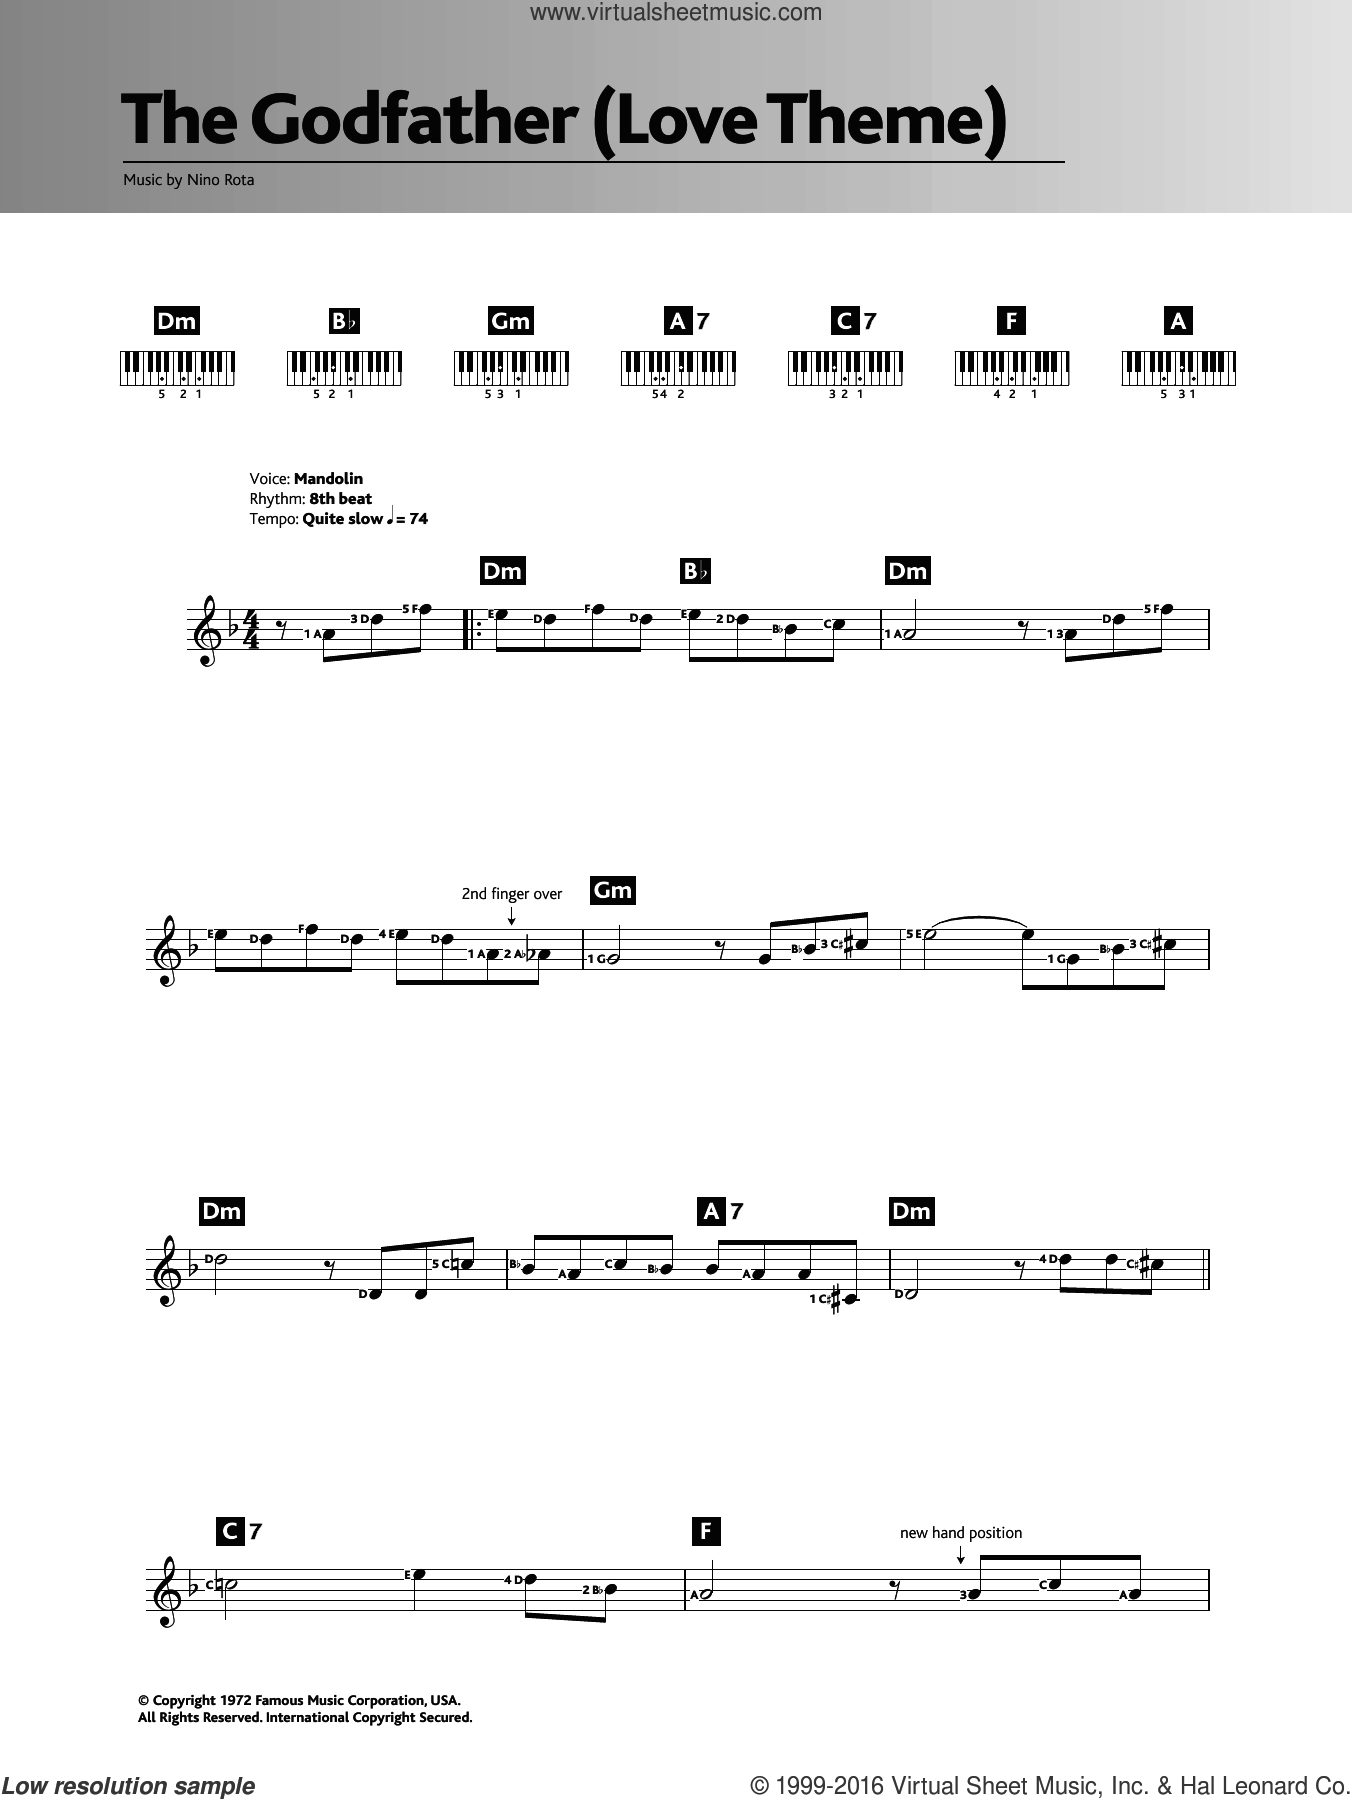 Speak Softly Love (Godfather Theme) sheet music for piano solo (chords, lyrics, melody) by Nino Rota. Score Image Preview.